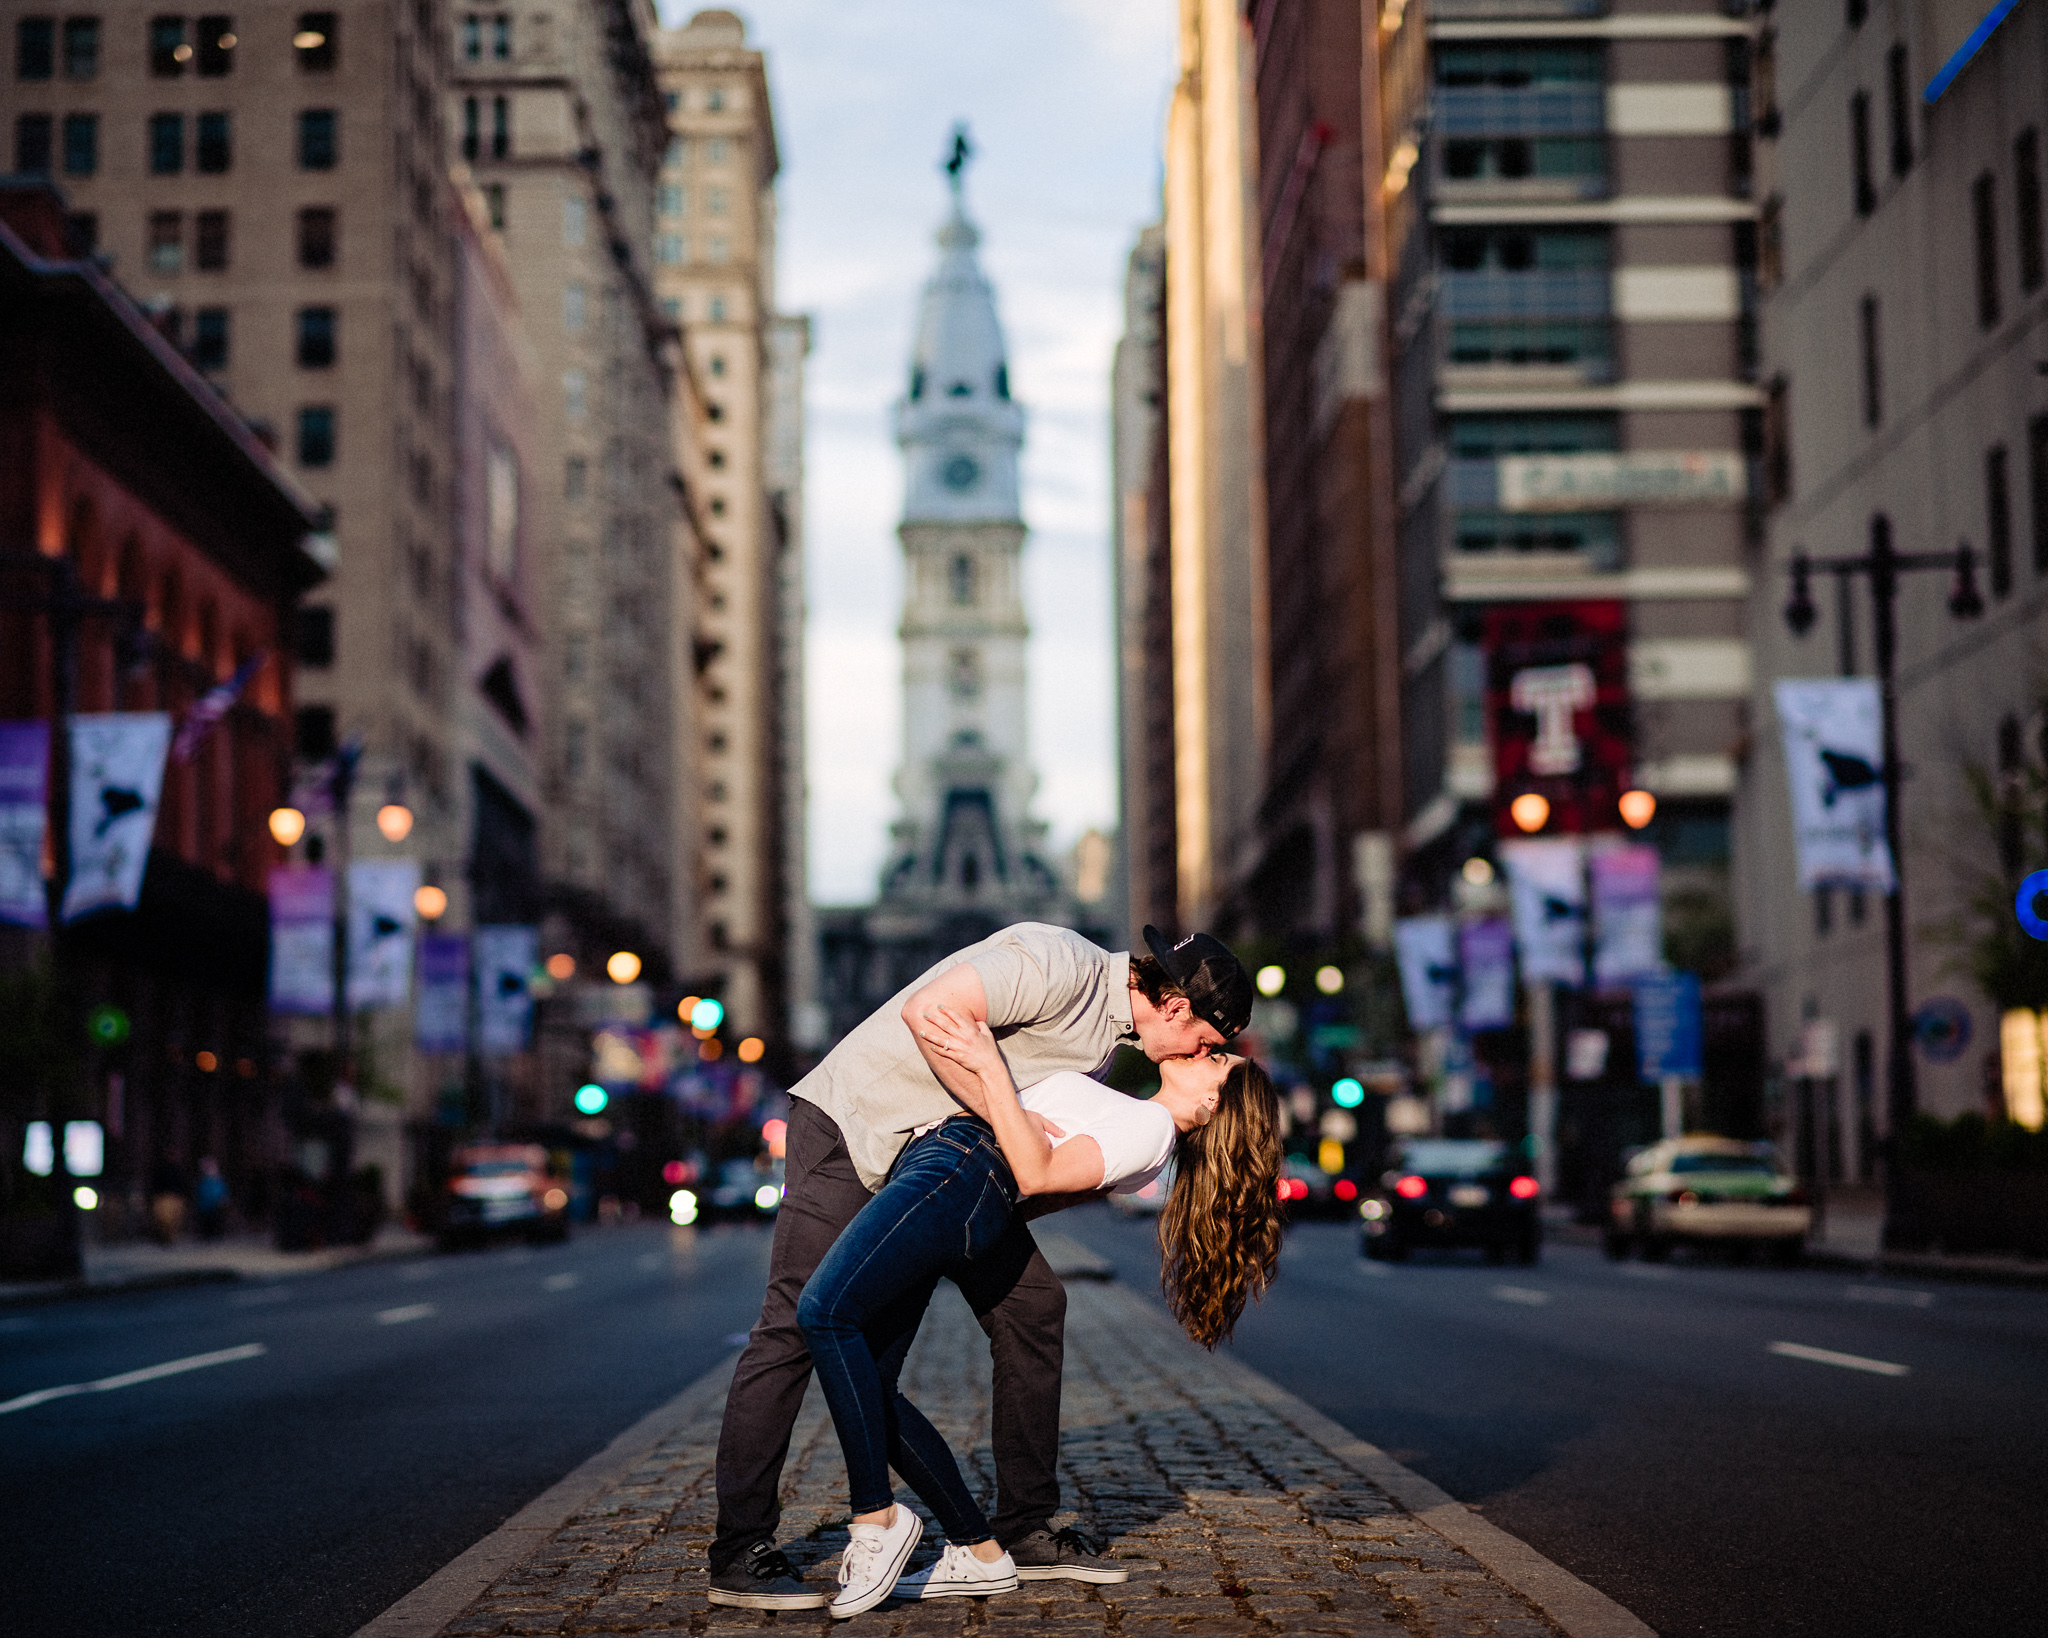 Philadelphia Old City Broad Street Engagement Photography-2019 -04-22-19-10-852_8000-Pano-Edit.jpg